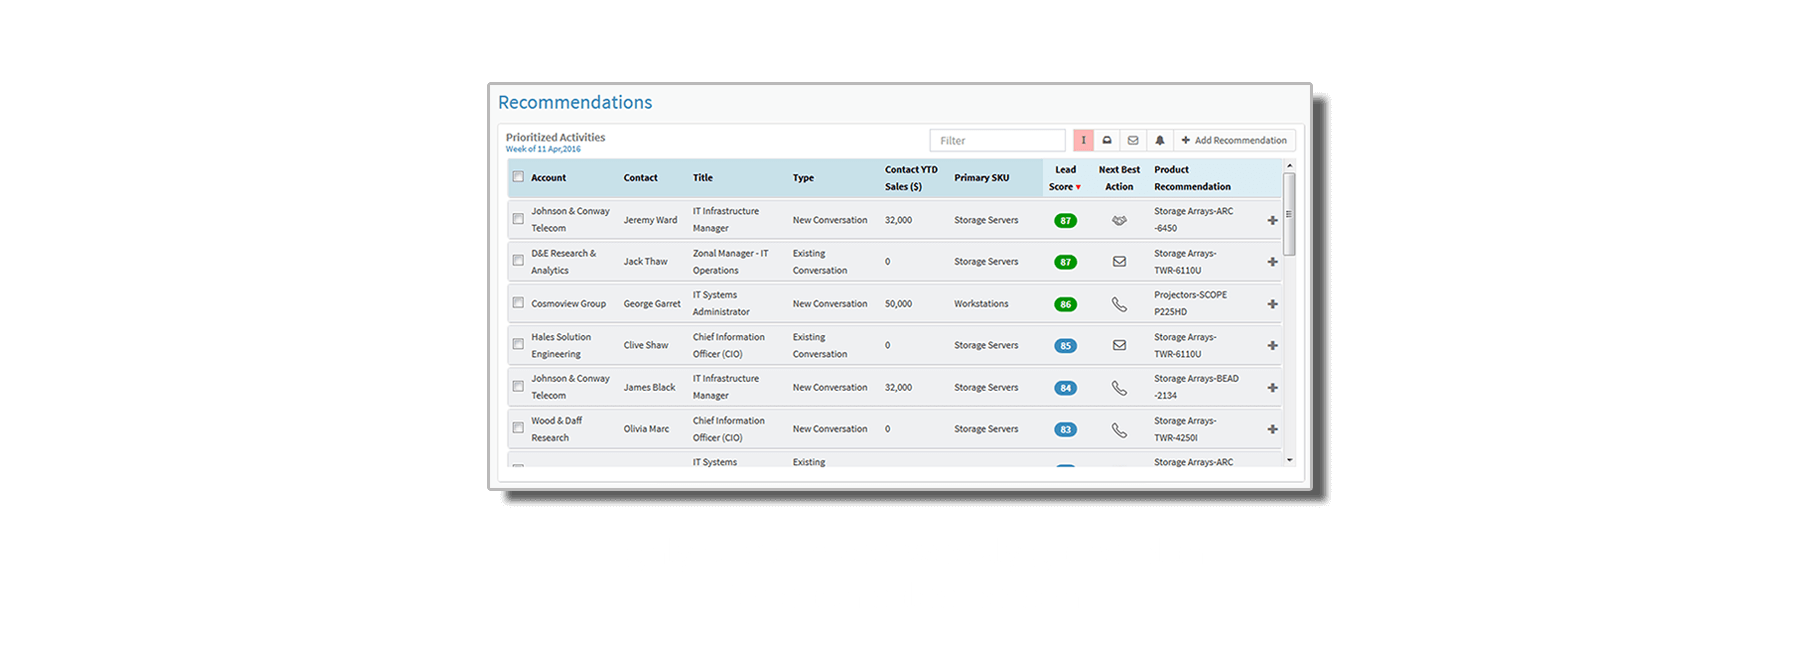 NAVIK SalesAI is AI software for sales that provides a weekly game plan customized for each rep